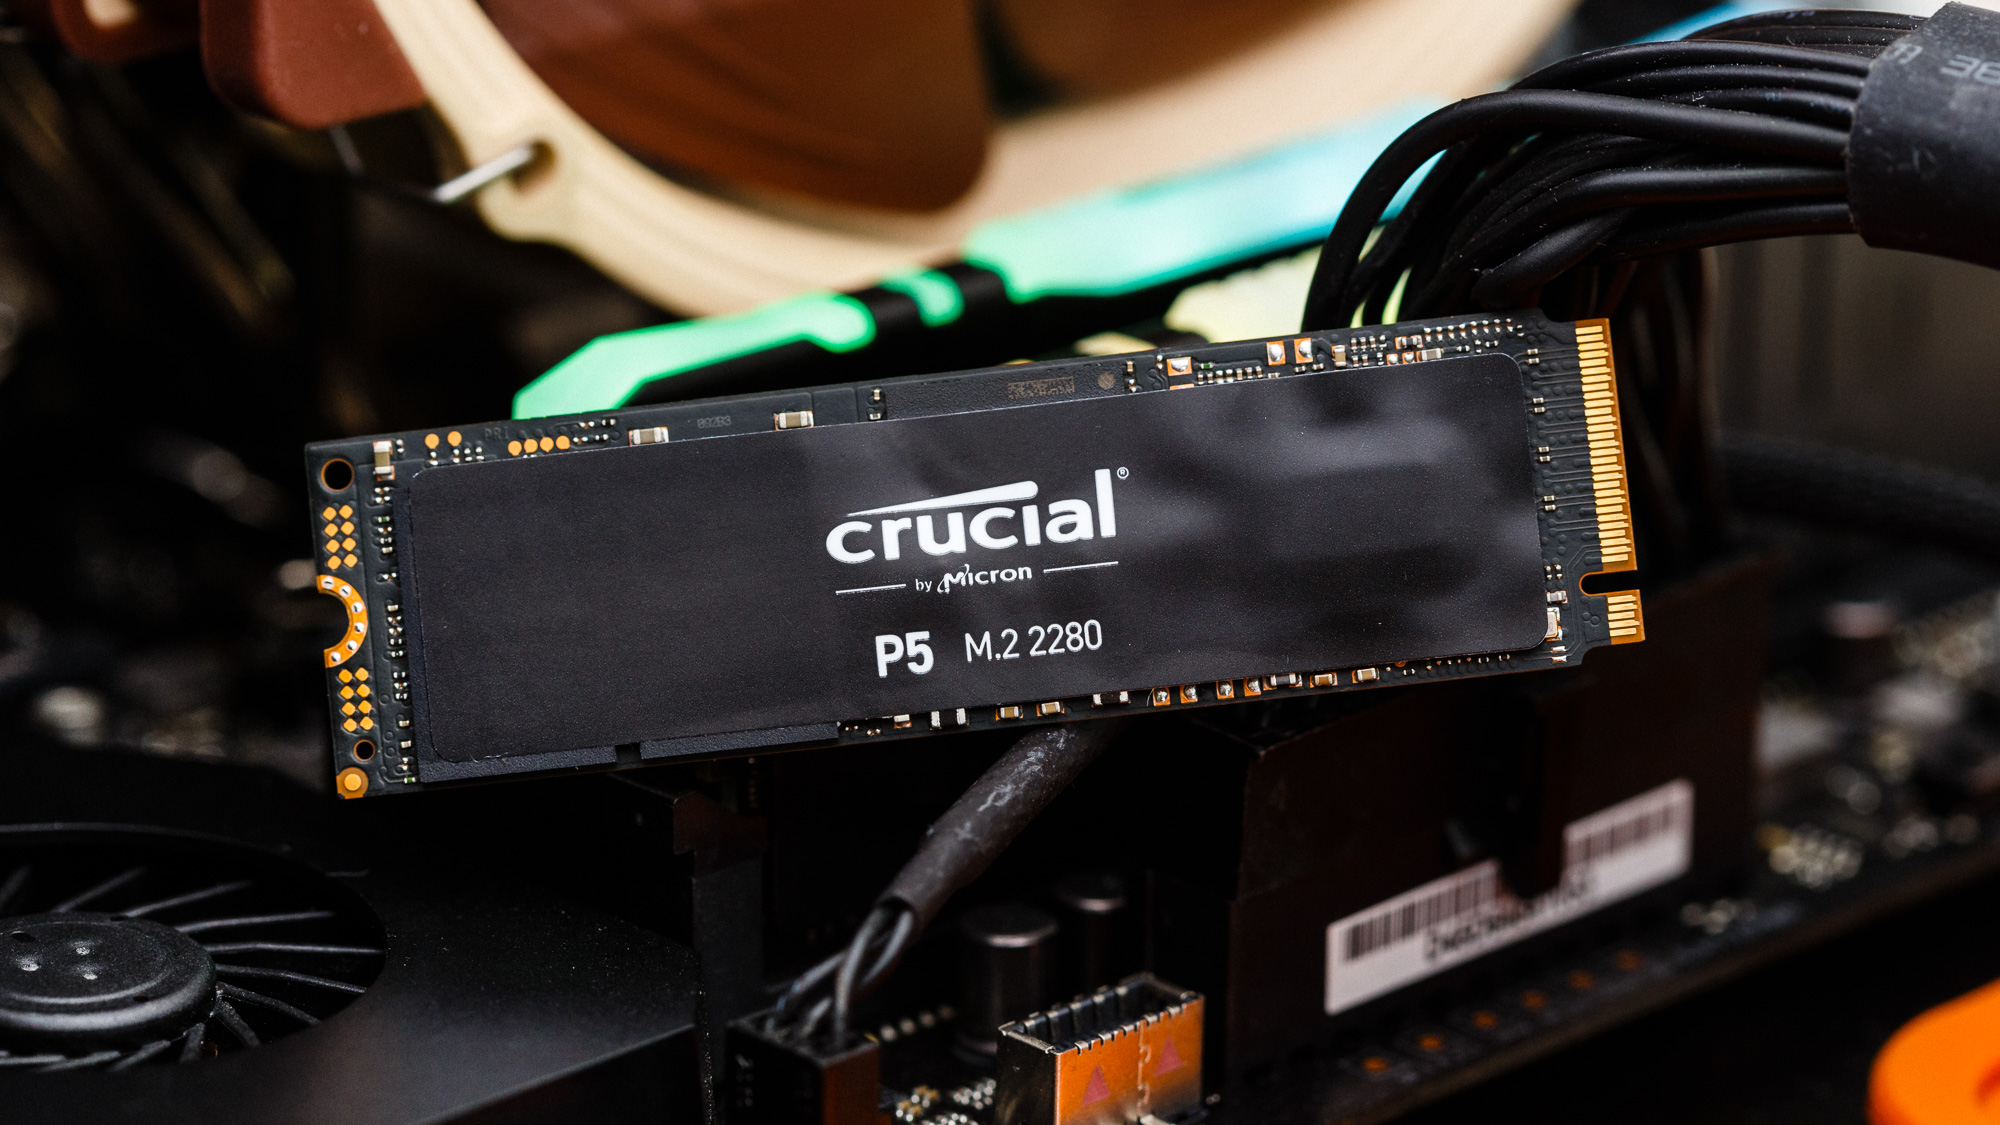 Crucial Says Chia Cryptomining Voids SSD Warranty, Then Backs Down